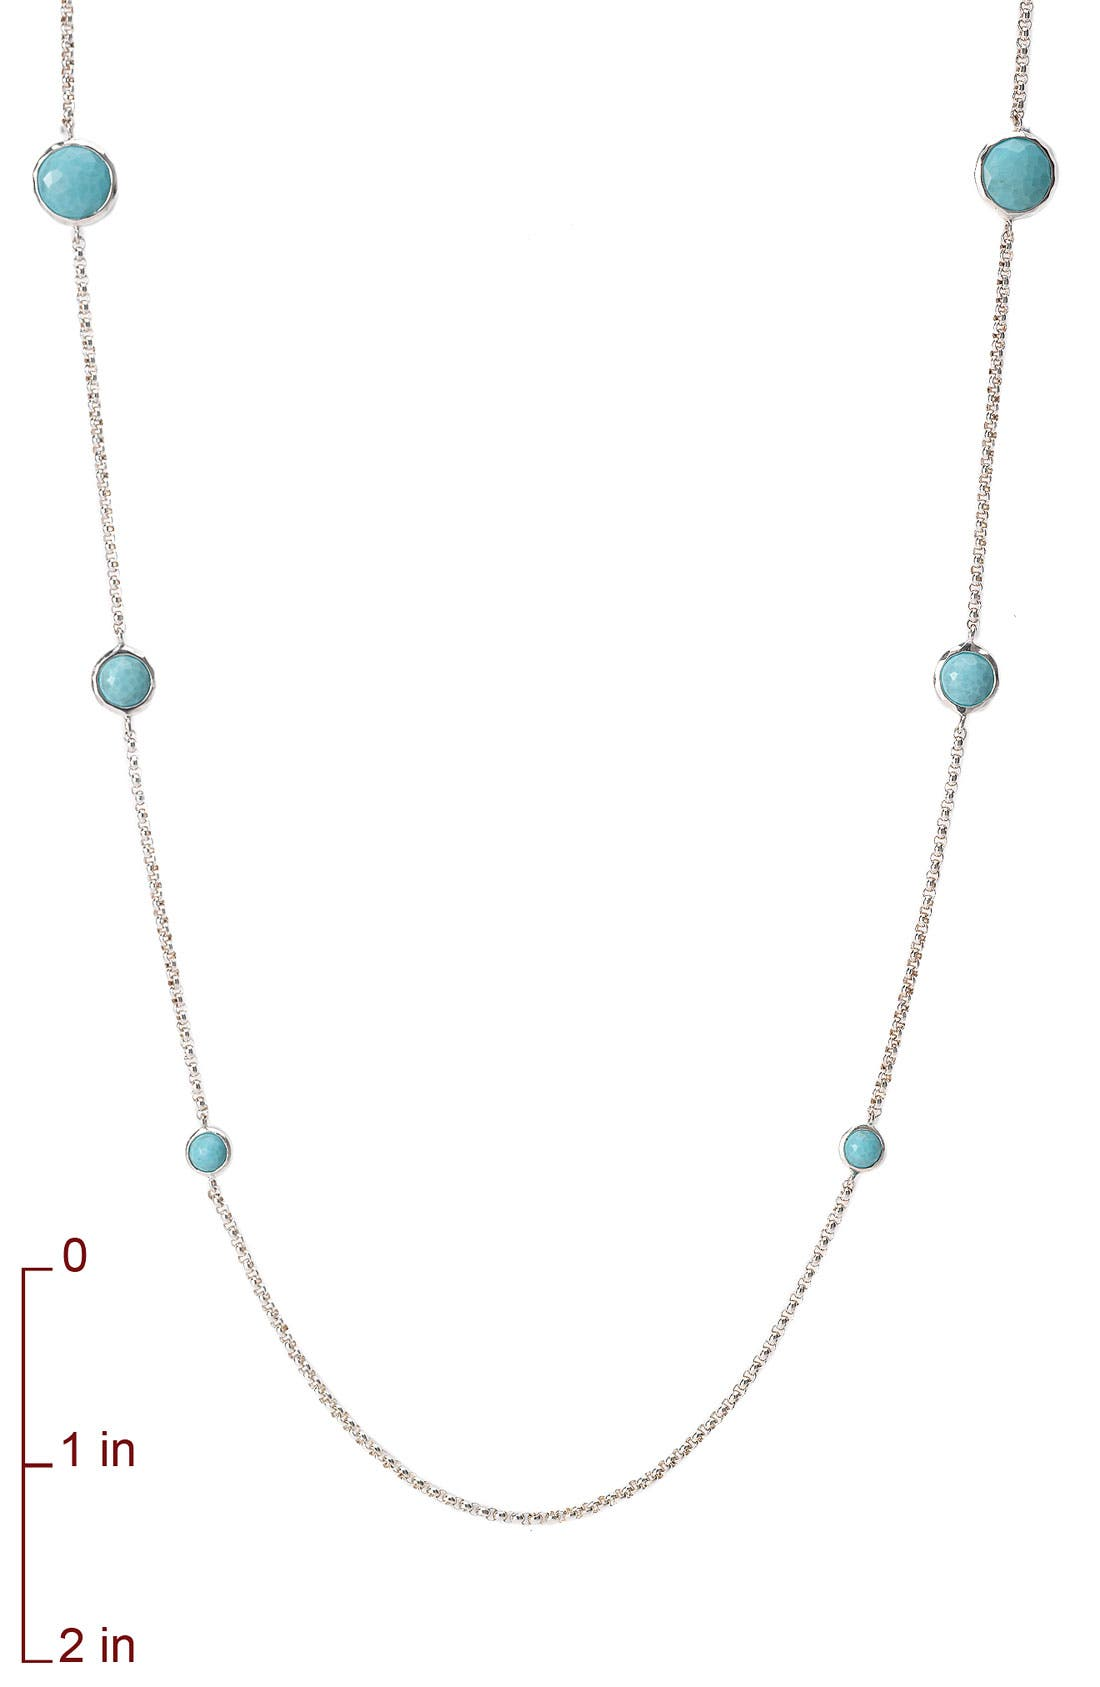 'Rock Candy - Lollipop' Long Necklace,                             Alternate thumbnail 6, color,                             SILVER - TURQUOISE